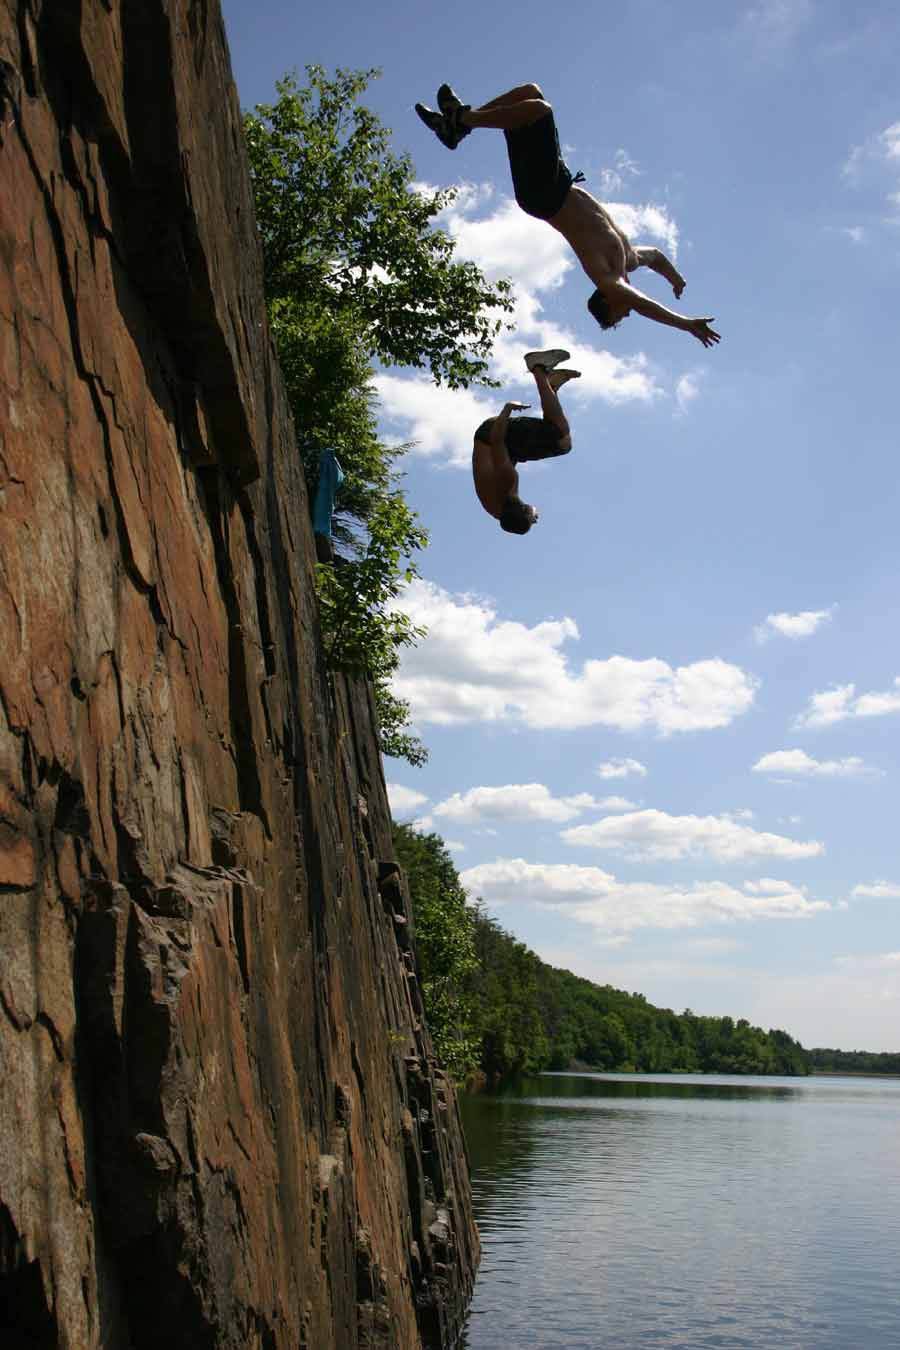 cliff jumping - synchronized backflips